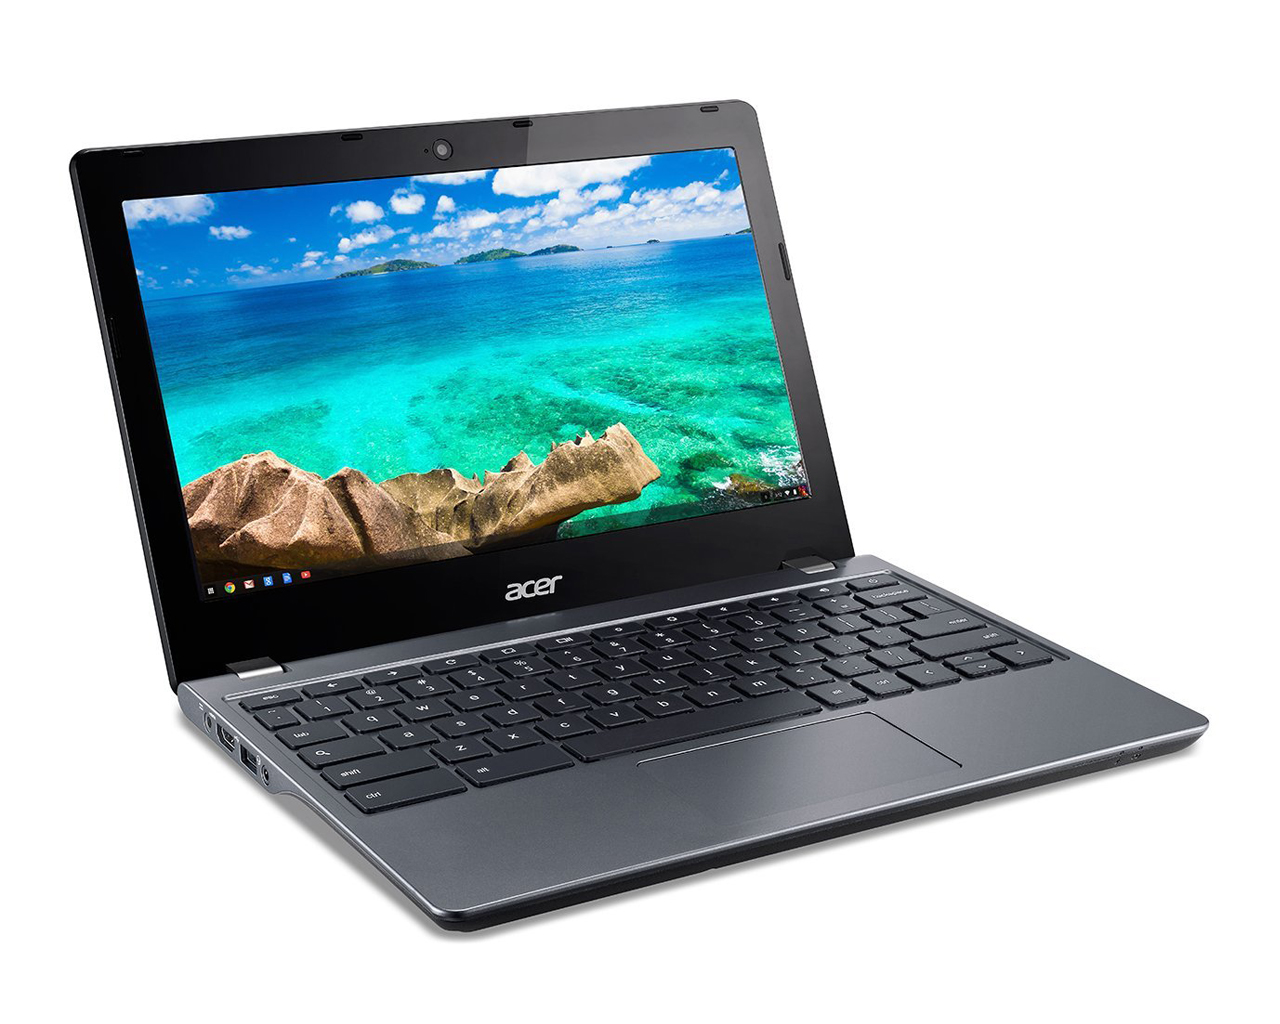 Acer Aspire 5 15.6-Inch Notebook - (Black) (Intel Core i5